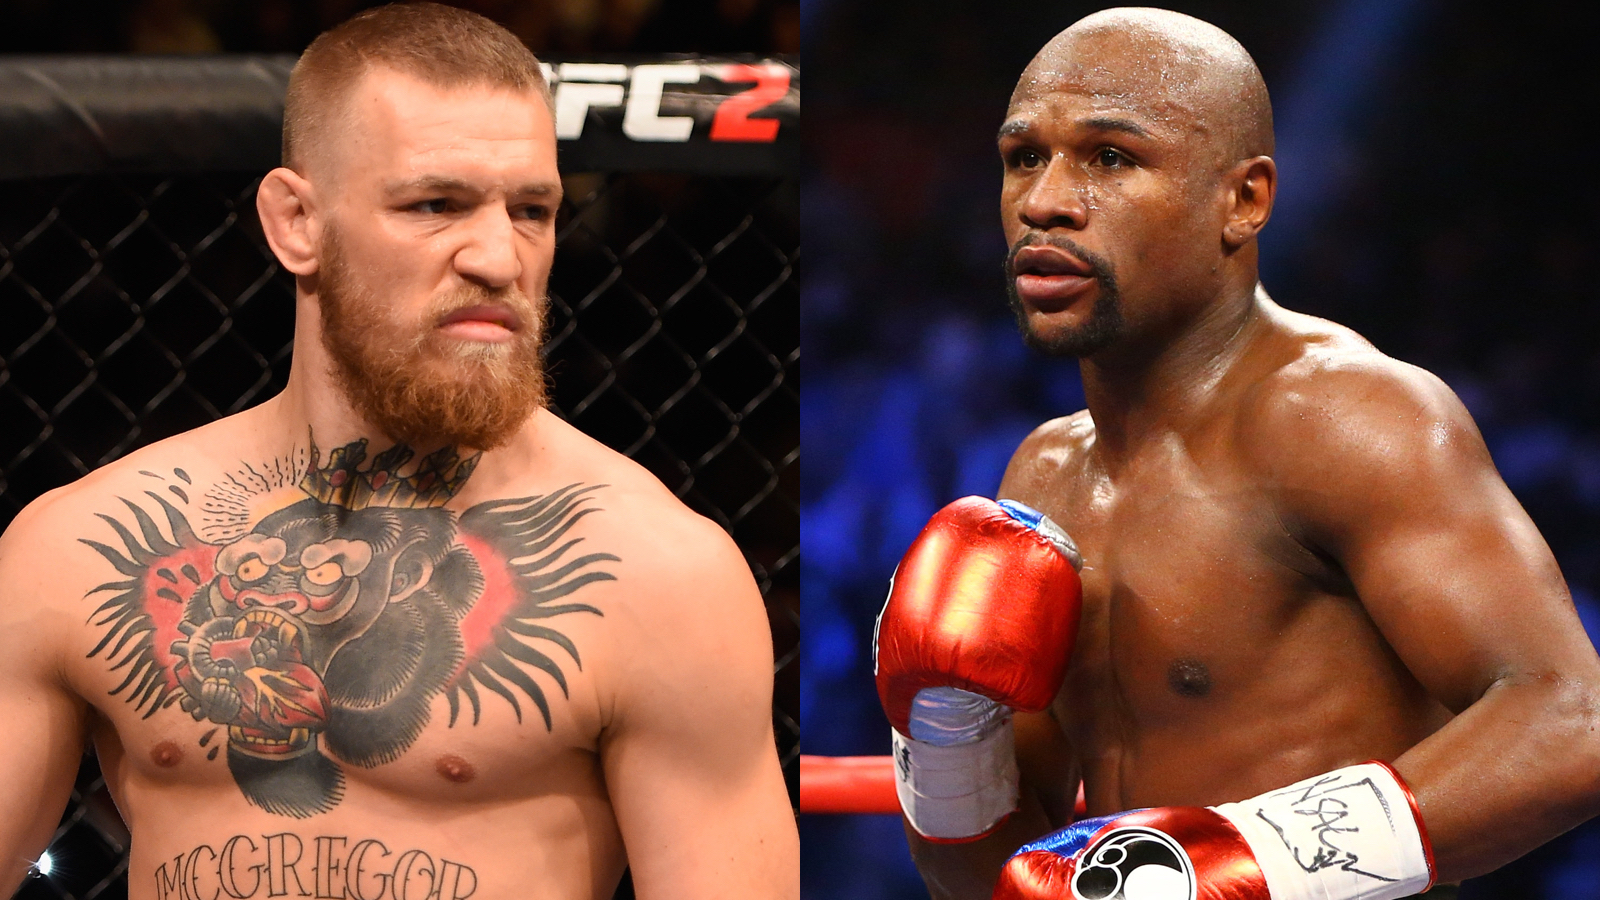 Where to Watch McGregor vs. Mayweather in #HipNJ!